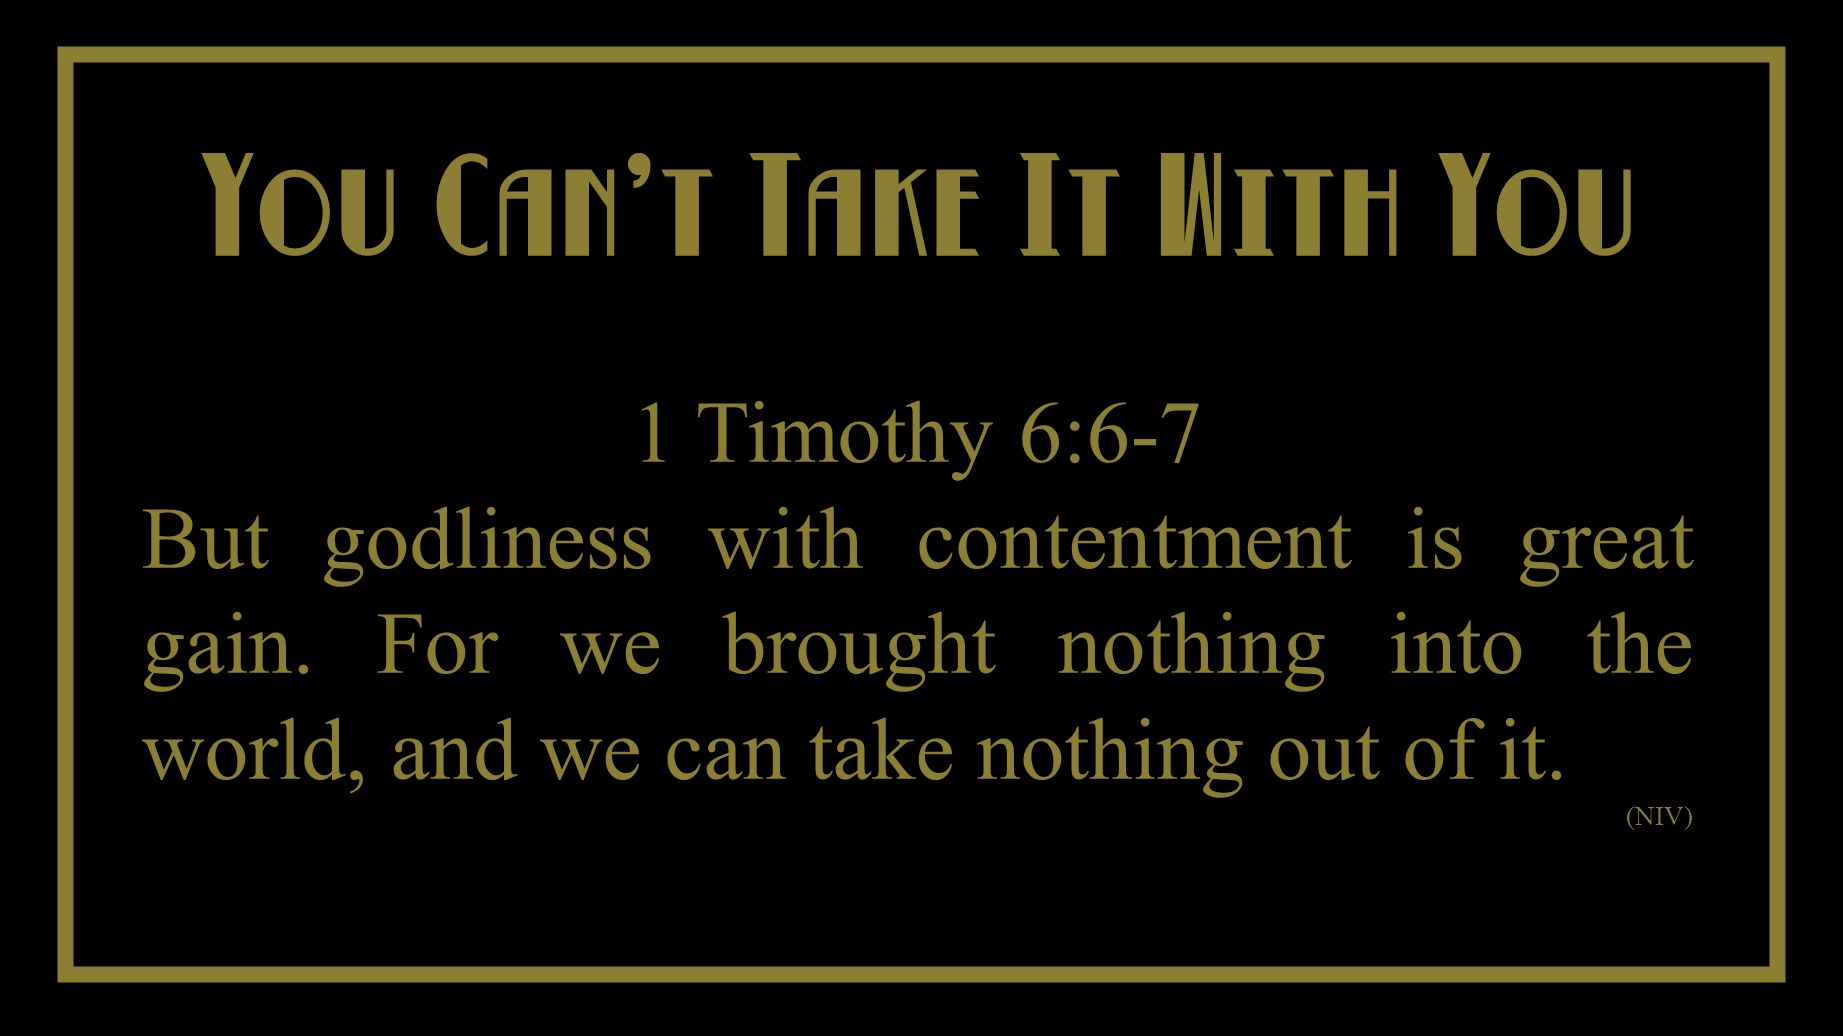 You Cant Take It With You You Cant Take It With You 1 Timothy 6:6-7 But godliness with contentment is great gain.